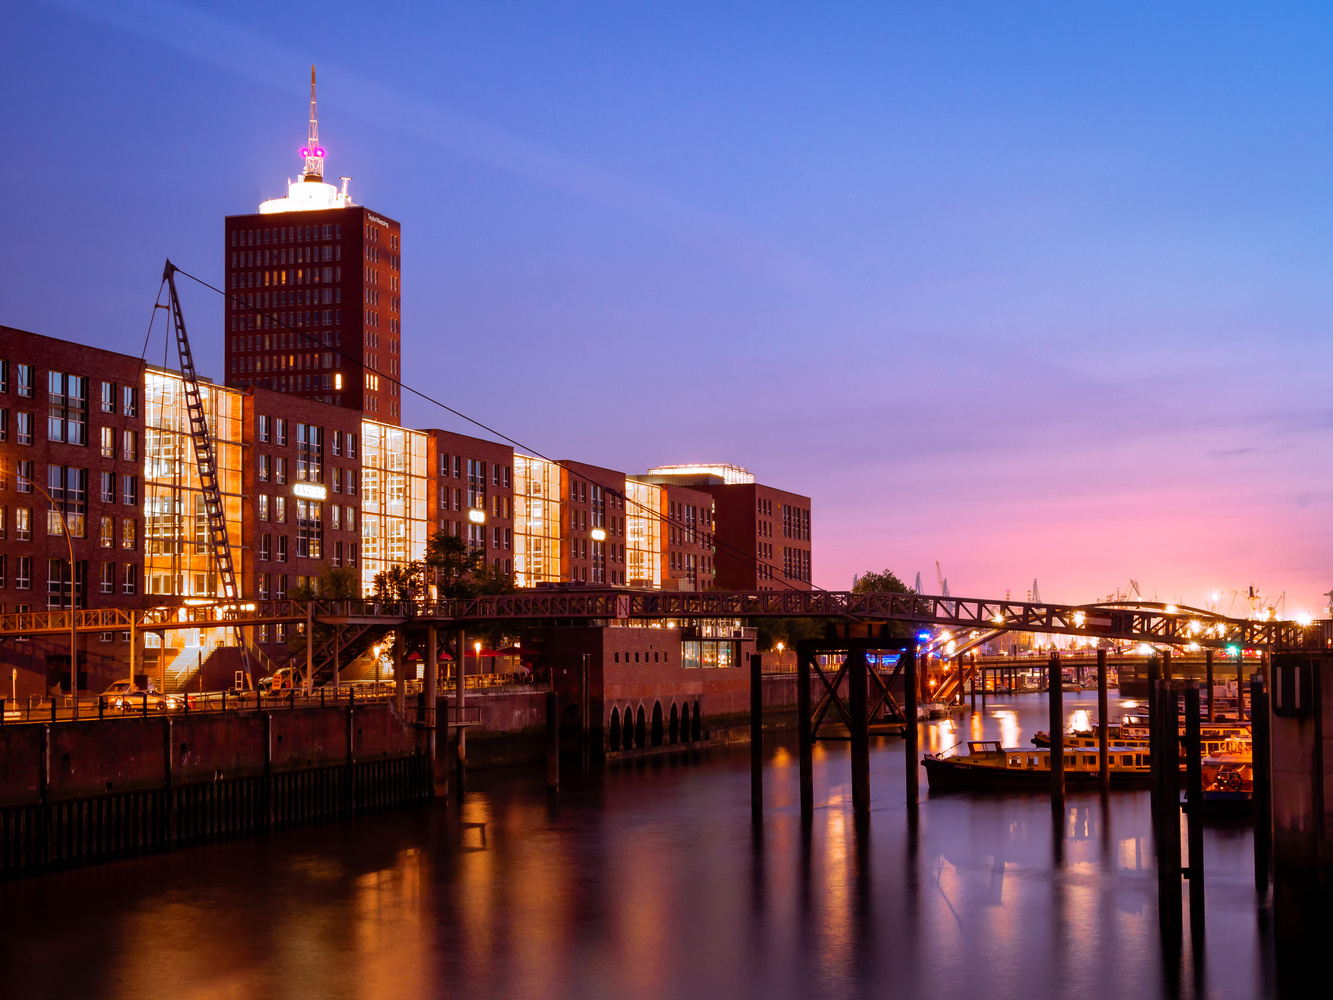 The Port at Night by QS Fotografie